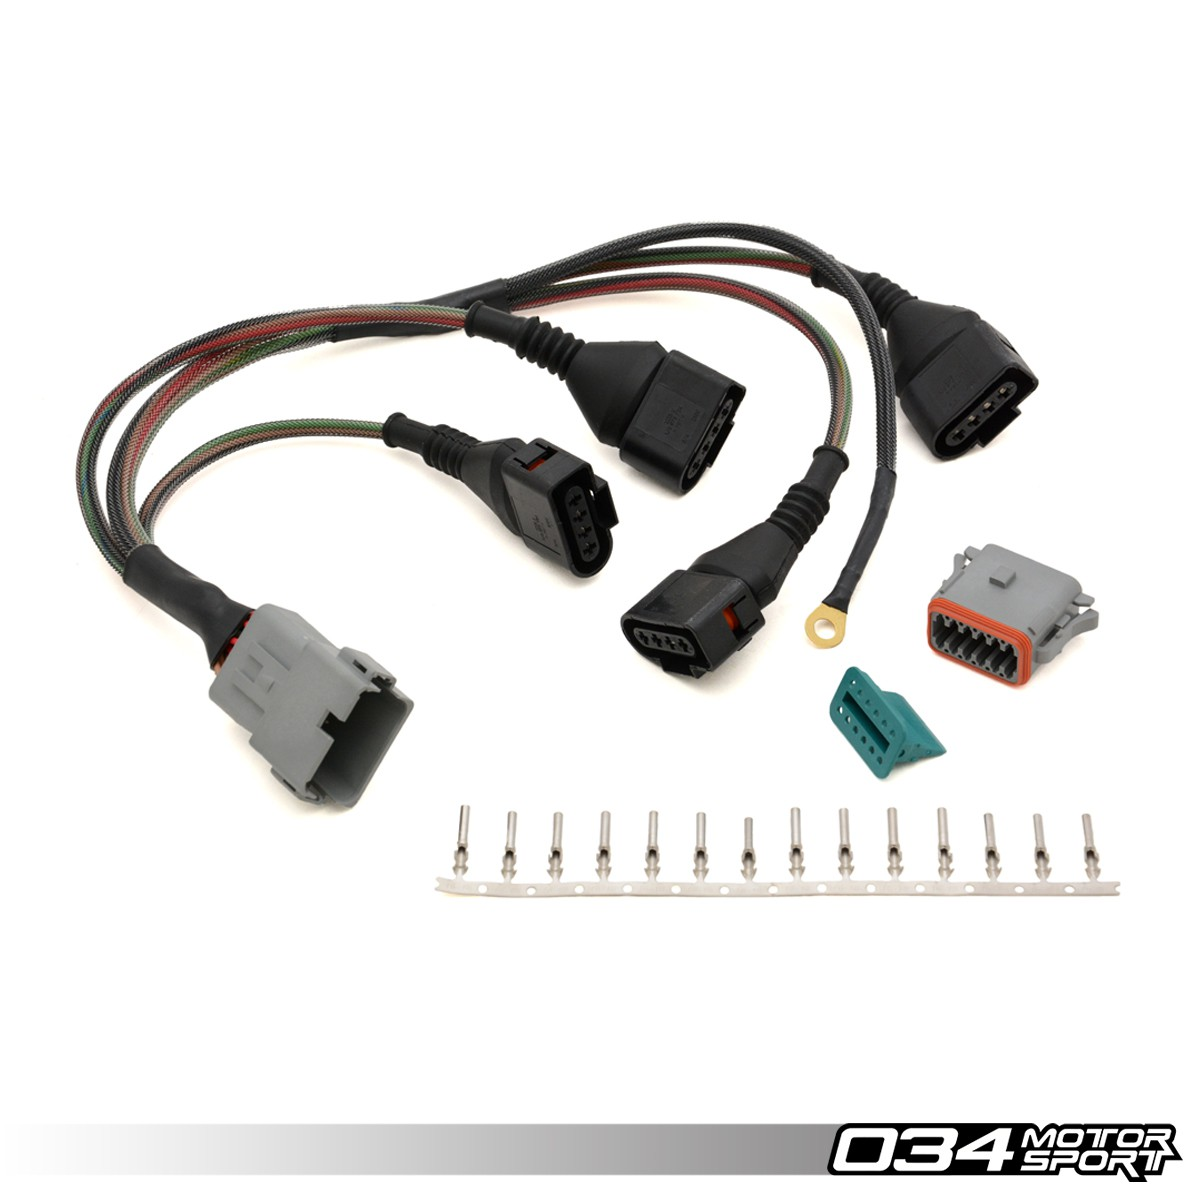 repair update harness audi volkswagen 18t with 4 wire coils 034motorsport 034 701 0004 2 repair update harness, audi volkswagen 1 8t with 4 wire coils 1.8t coil pack wiring harness replacement at readyjetset.co